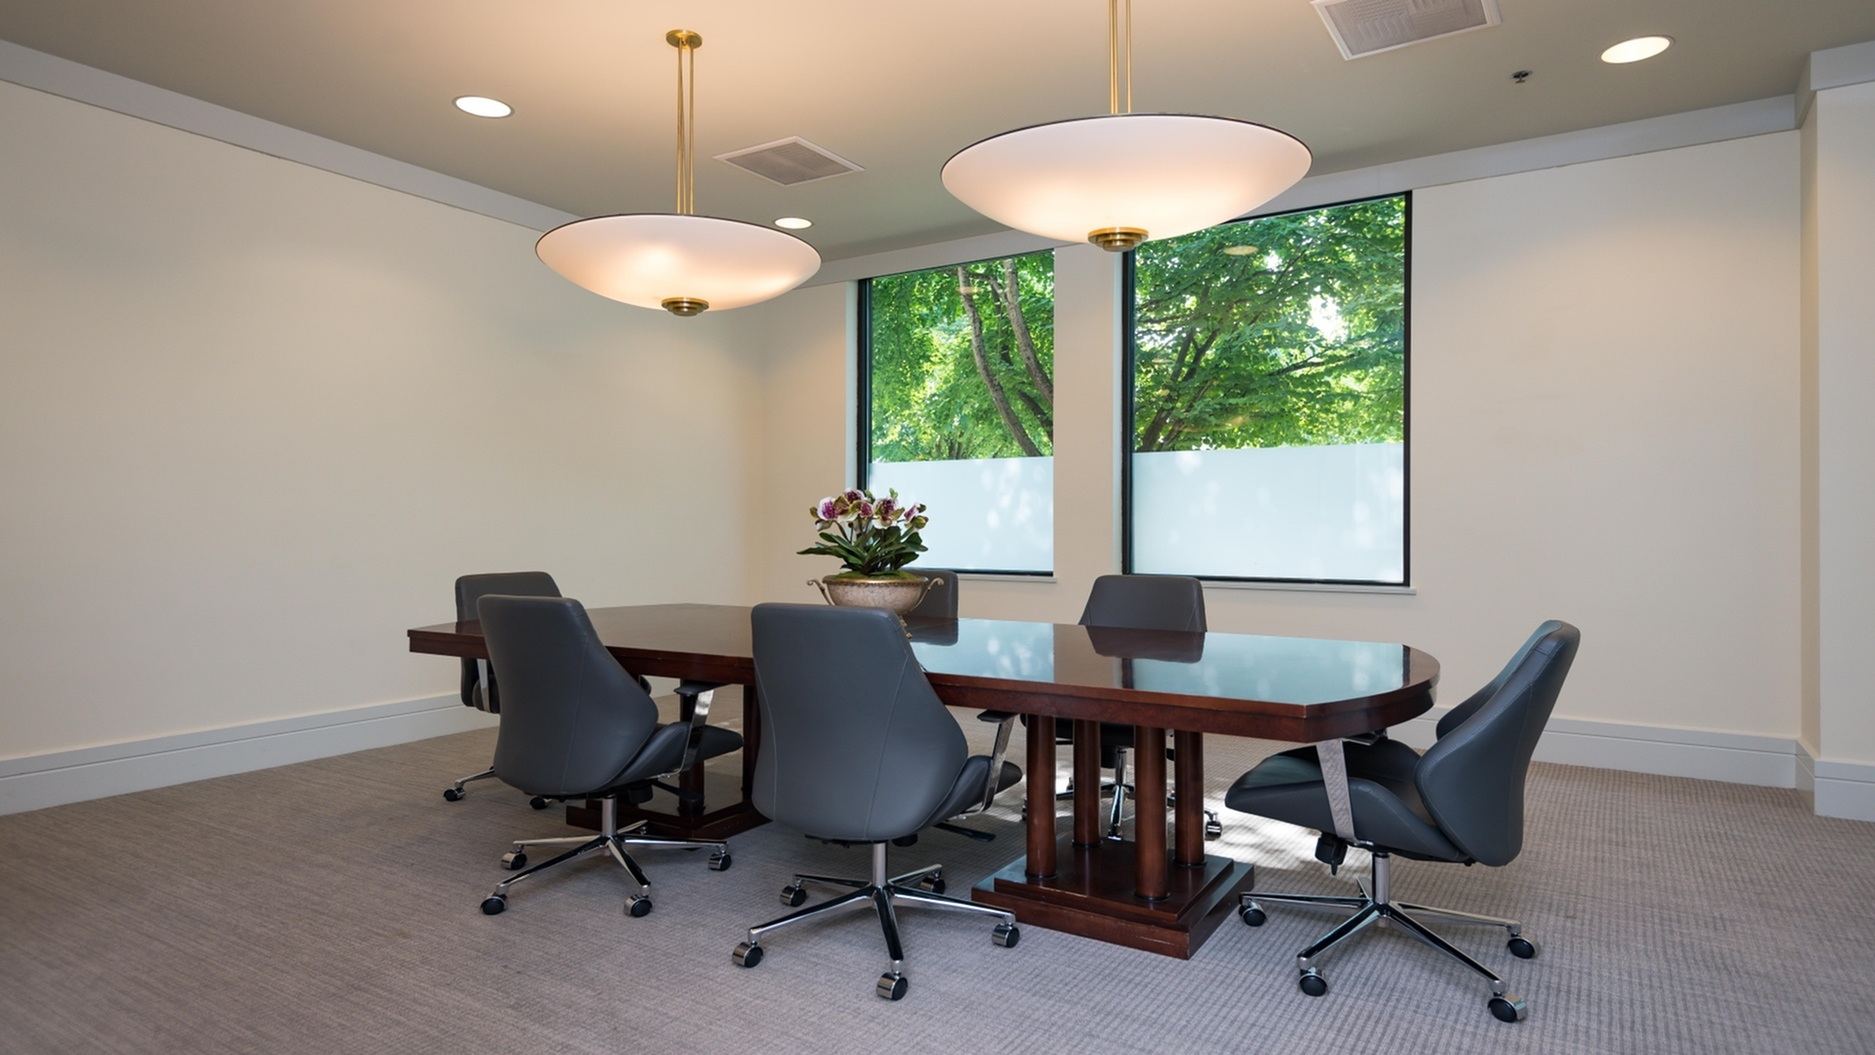 Image of Conference Room for Village at Main Street